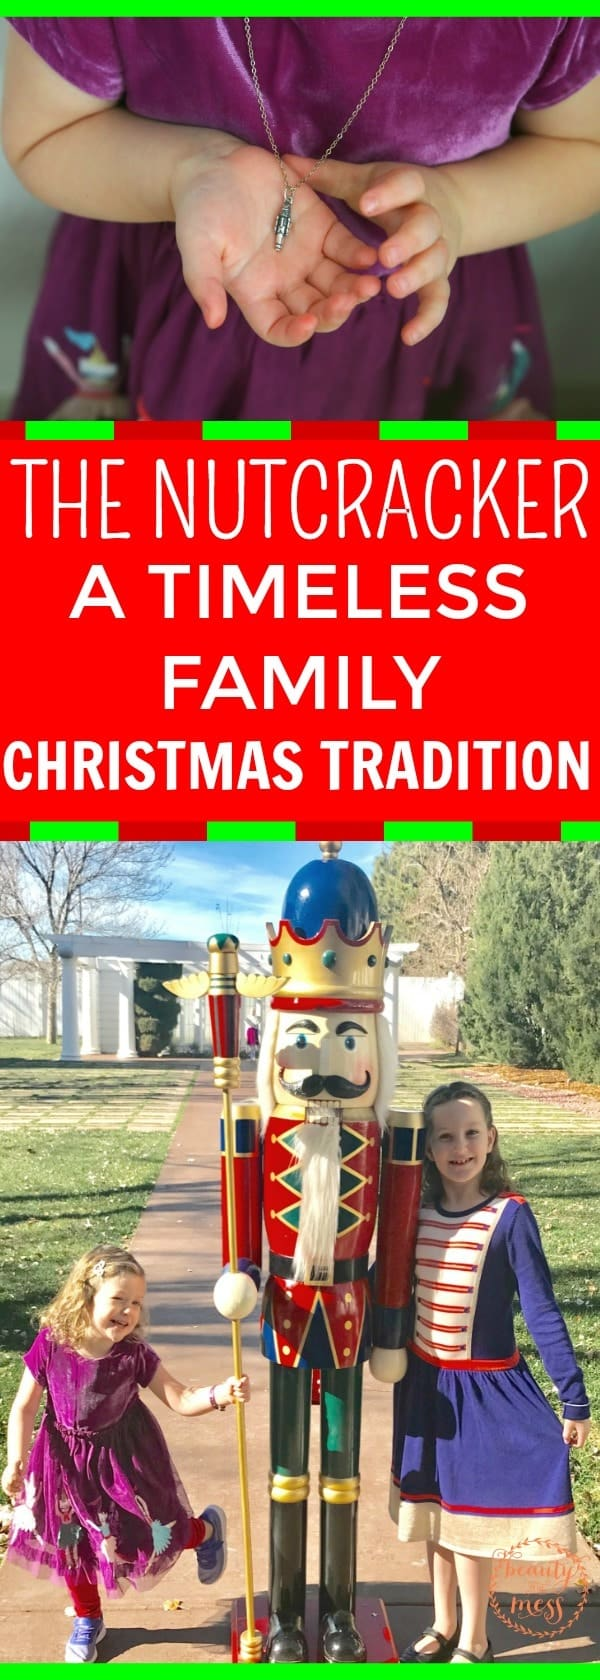 Christmas traditions come in all different shapes and sizes. They can be as simple as wearing matching pajamas Christmas morning or drinking hot cocoa while looking at Christmas lights. Come read how one experience became a tradition will we treasure for years to come.